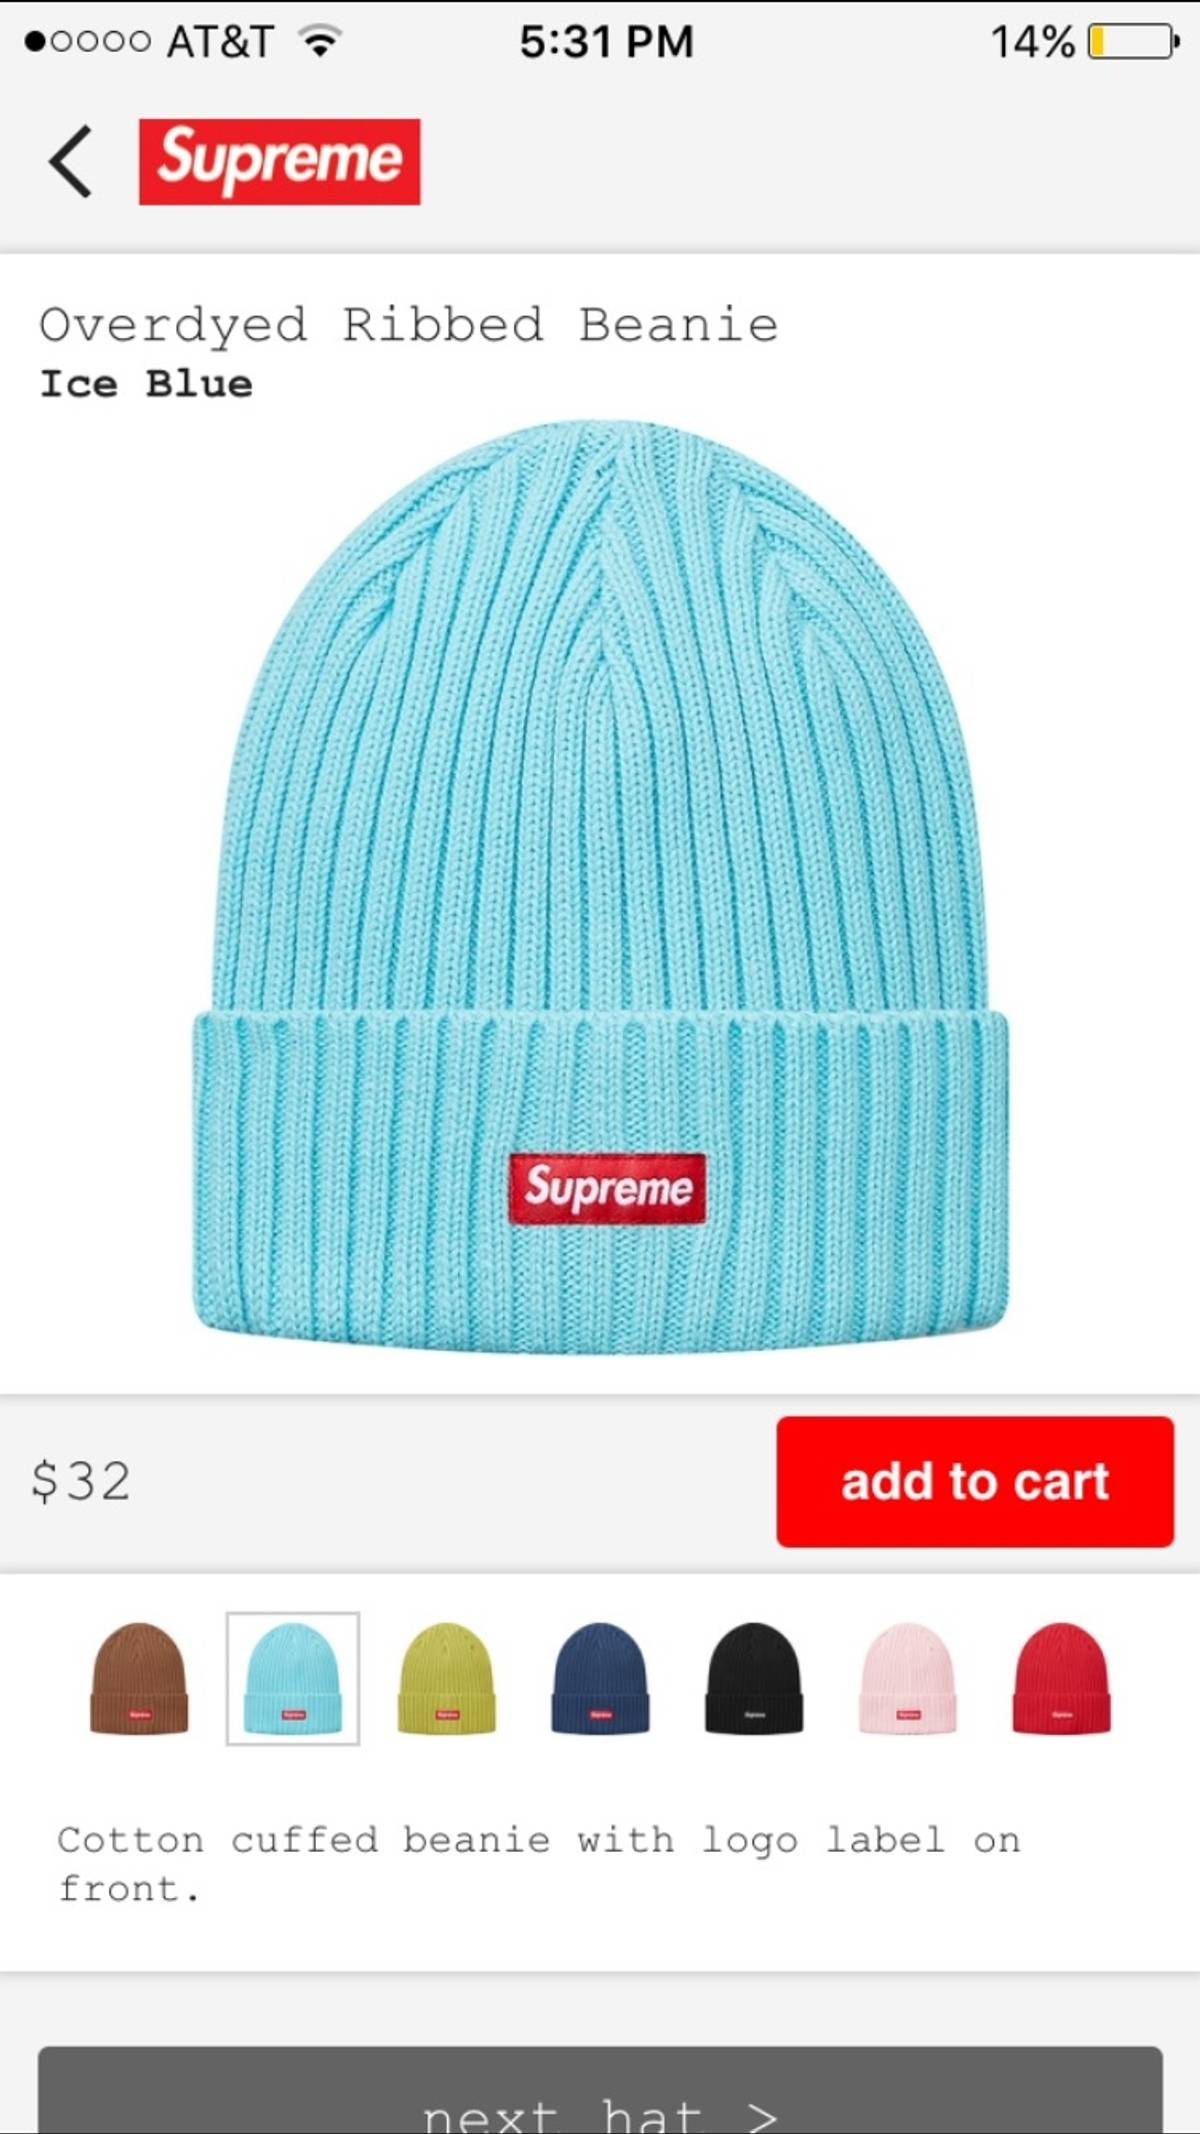 b12cac6e Supreme Overdyed Ribbed Beanie, Ice Blue | Grailed